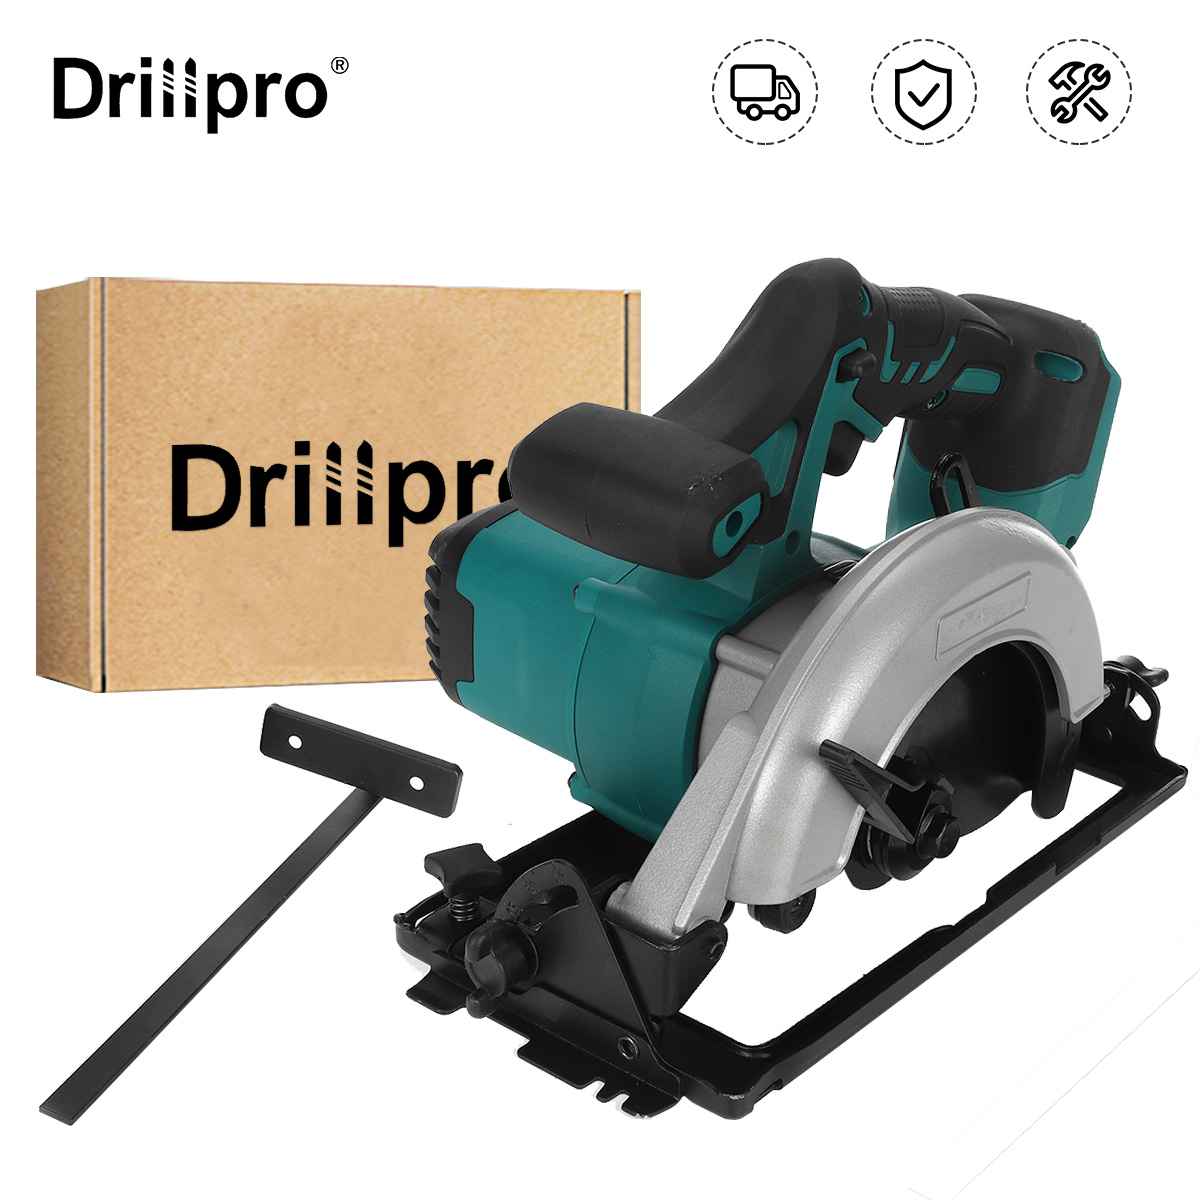 Drillpro 18V Cordless Electric Circular Saw for Makita 18V Battery 300W 152mm 6inch Blade Woodworking Cutting Tool